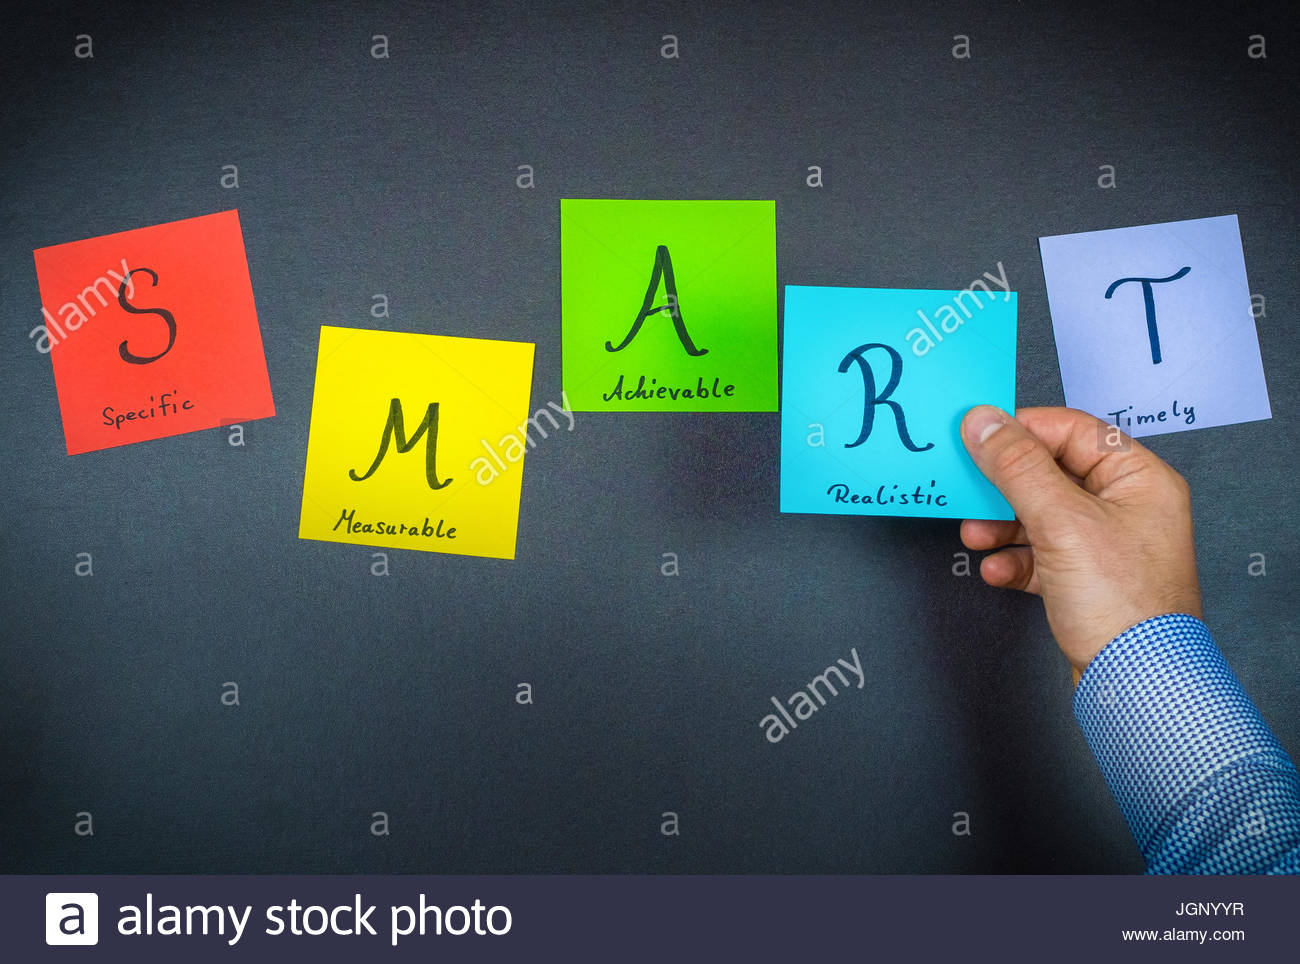 SMART - colorful notes - Stock Image